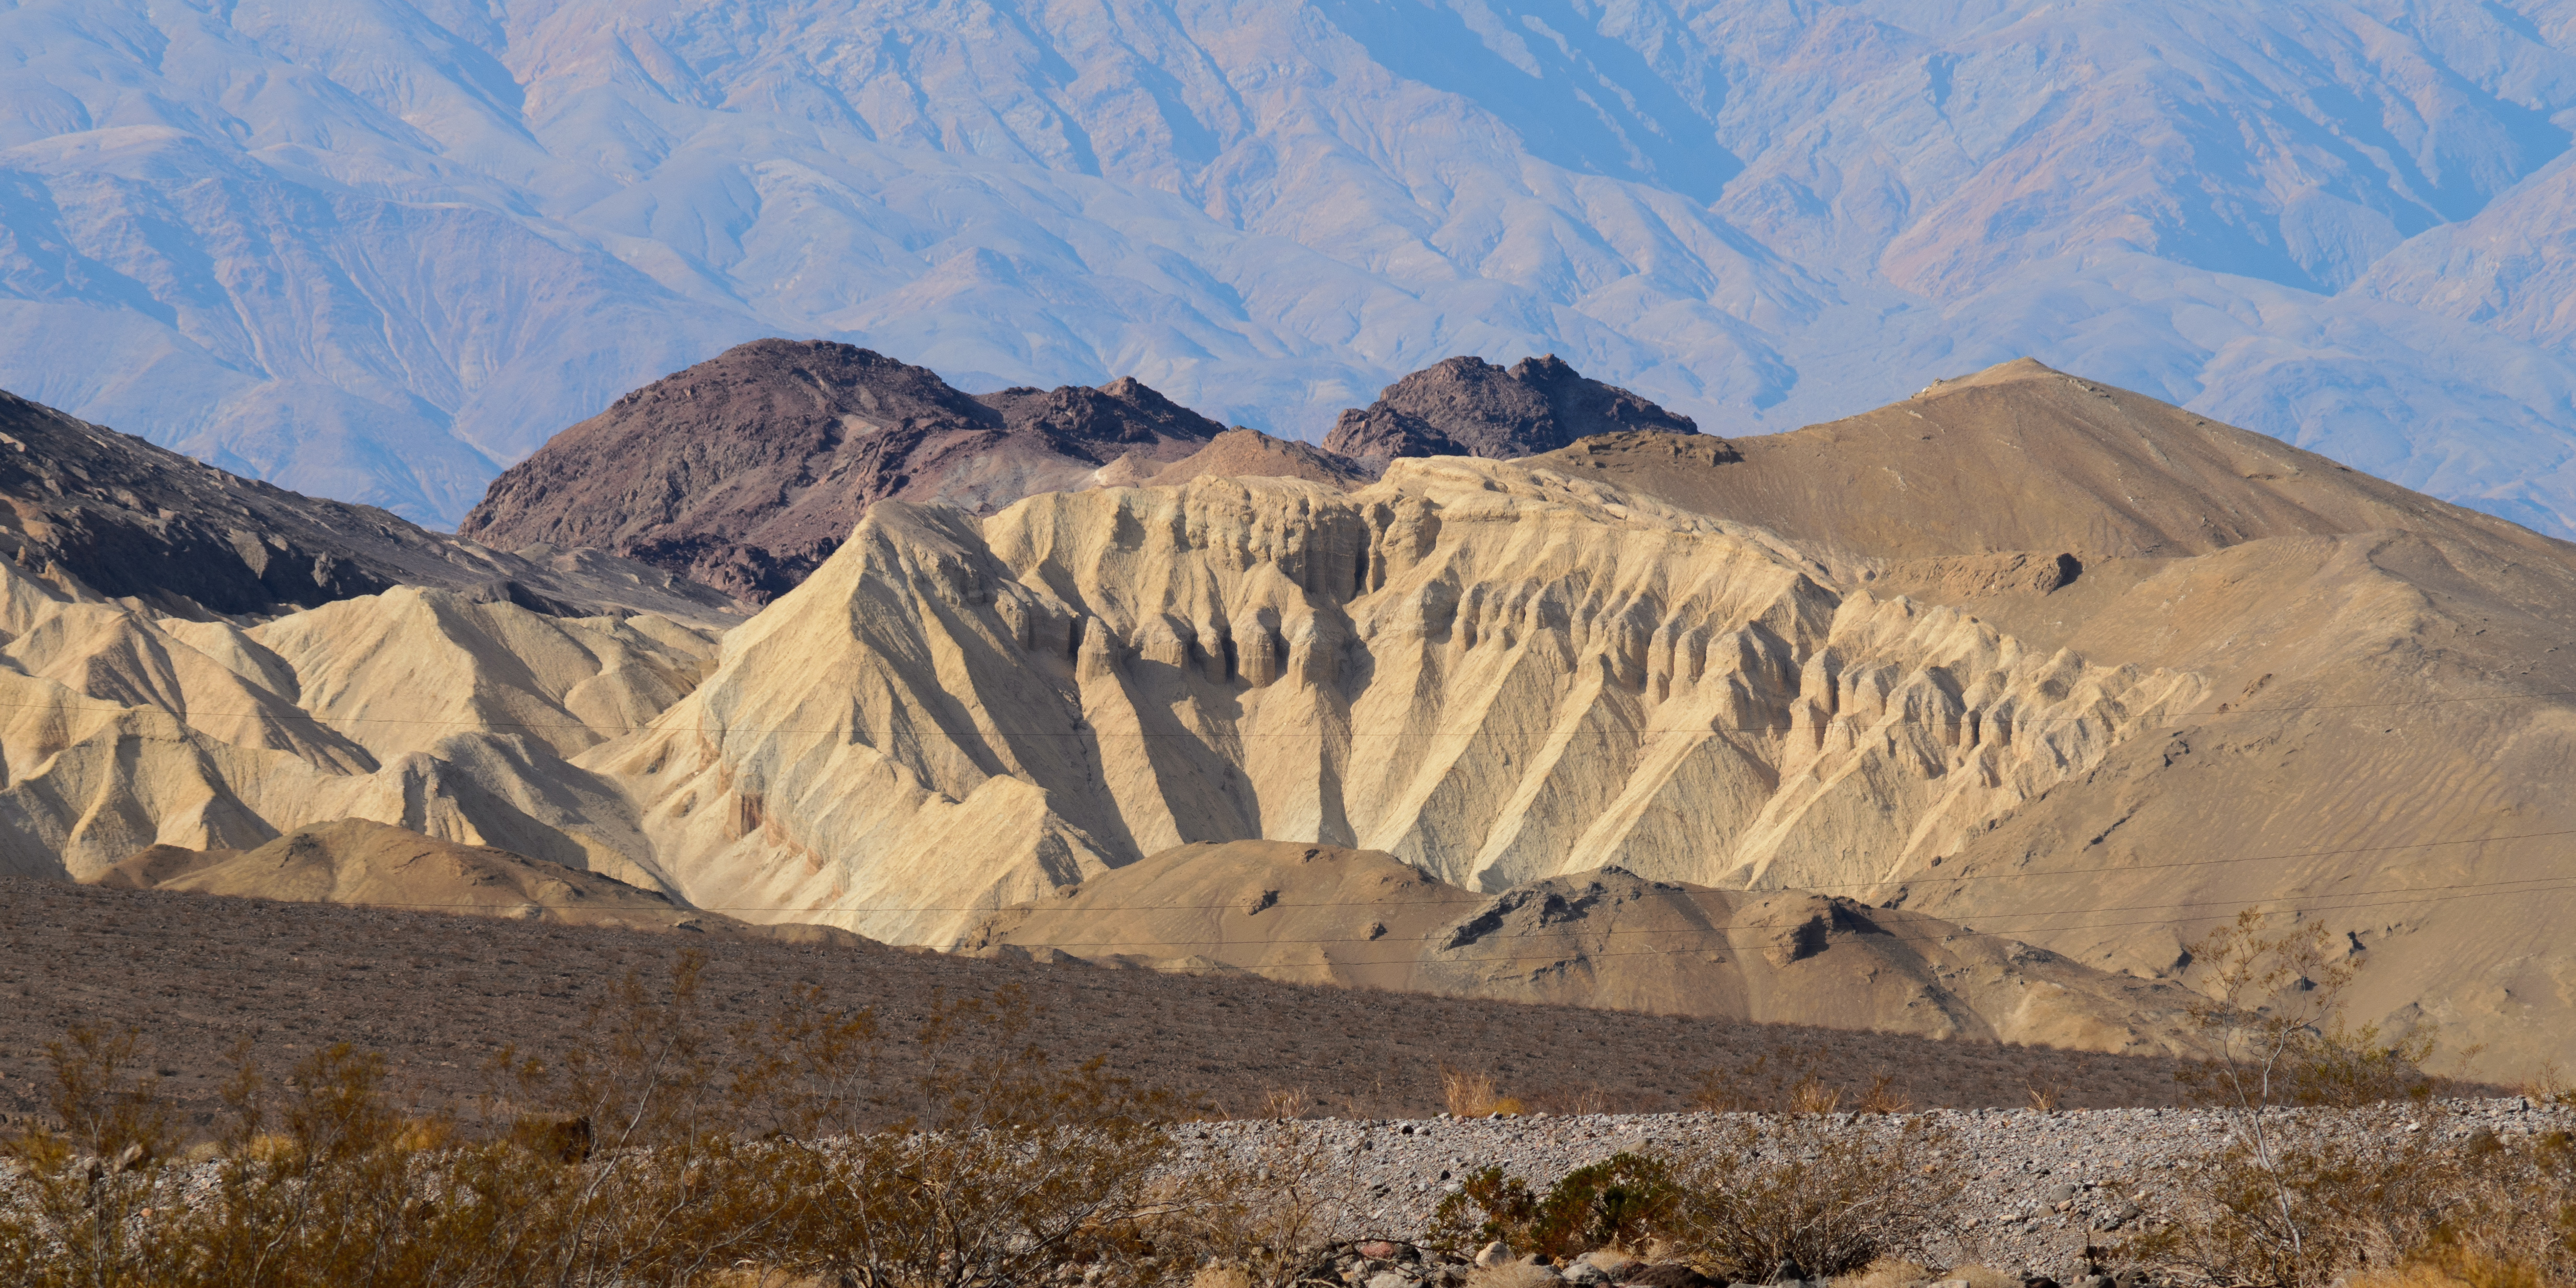 Size Death Valley National Park File:death Valley National